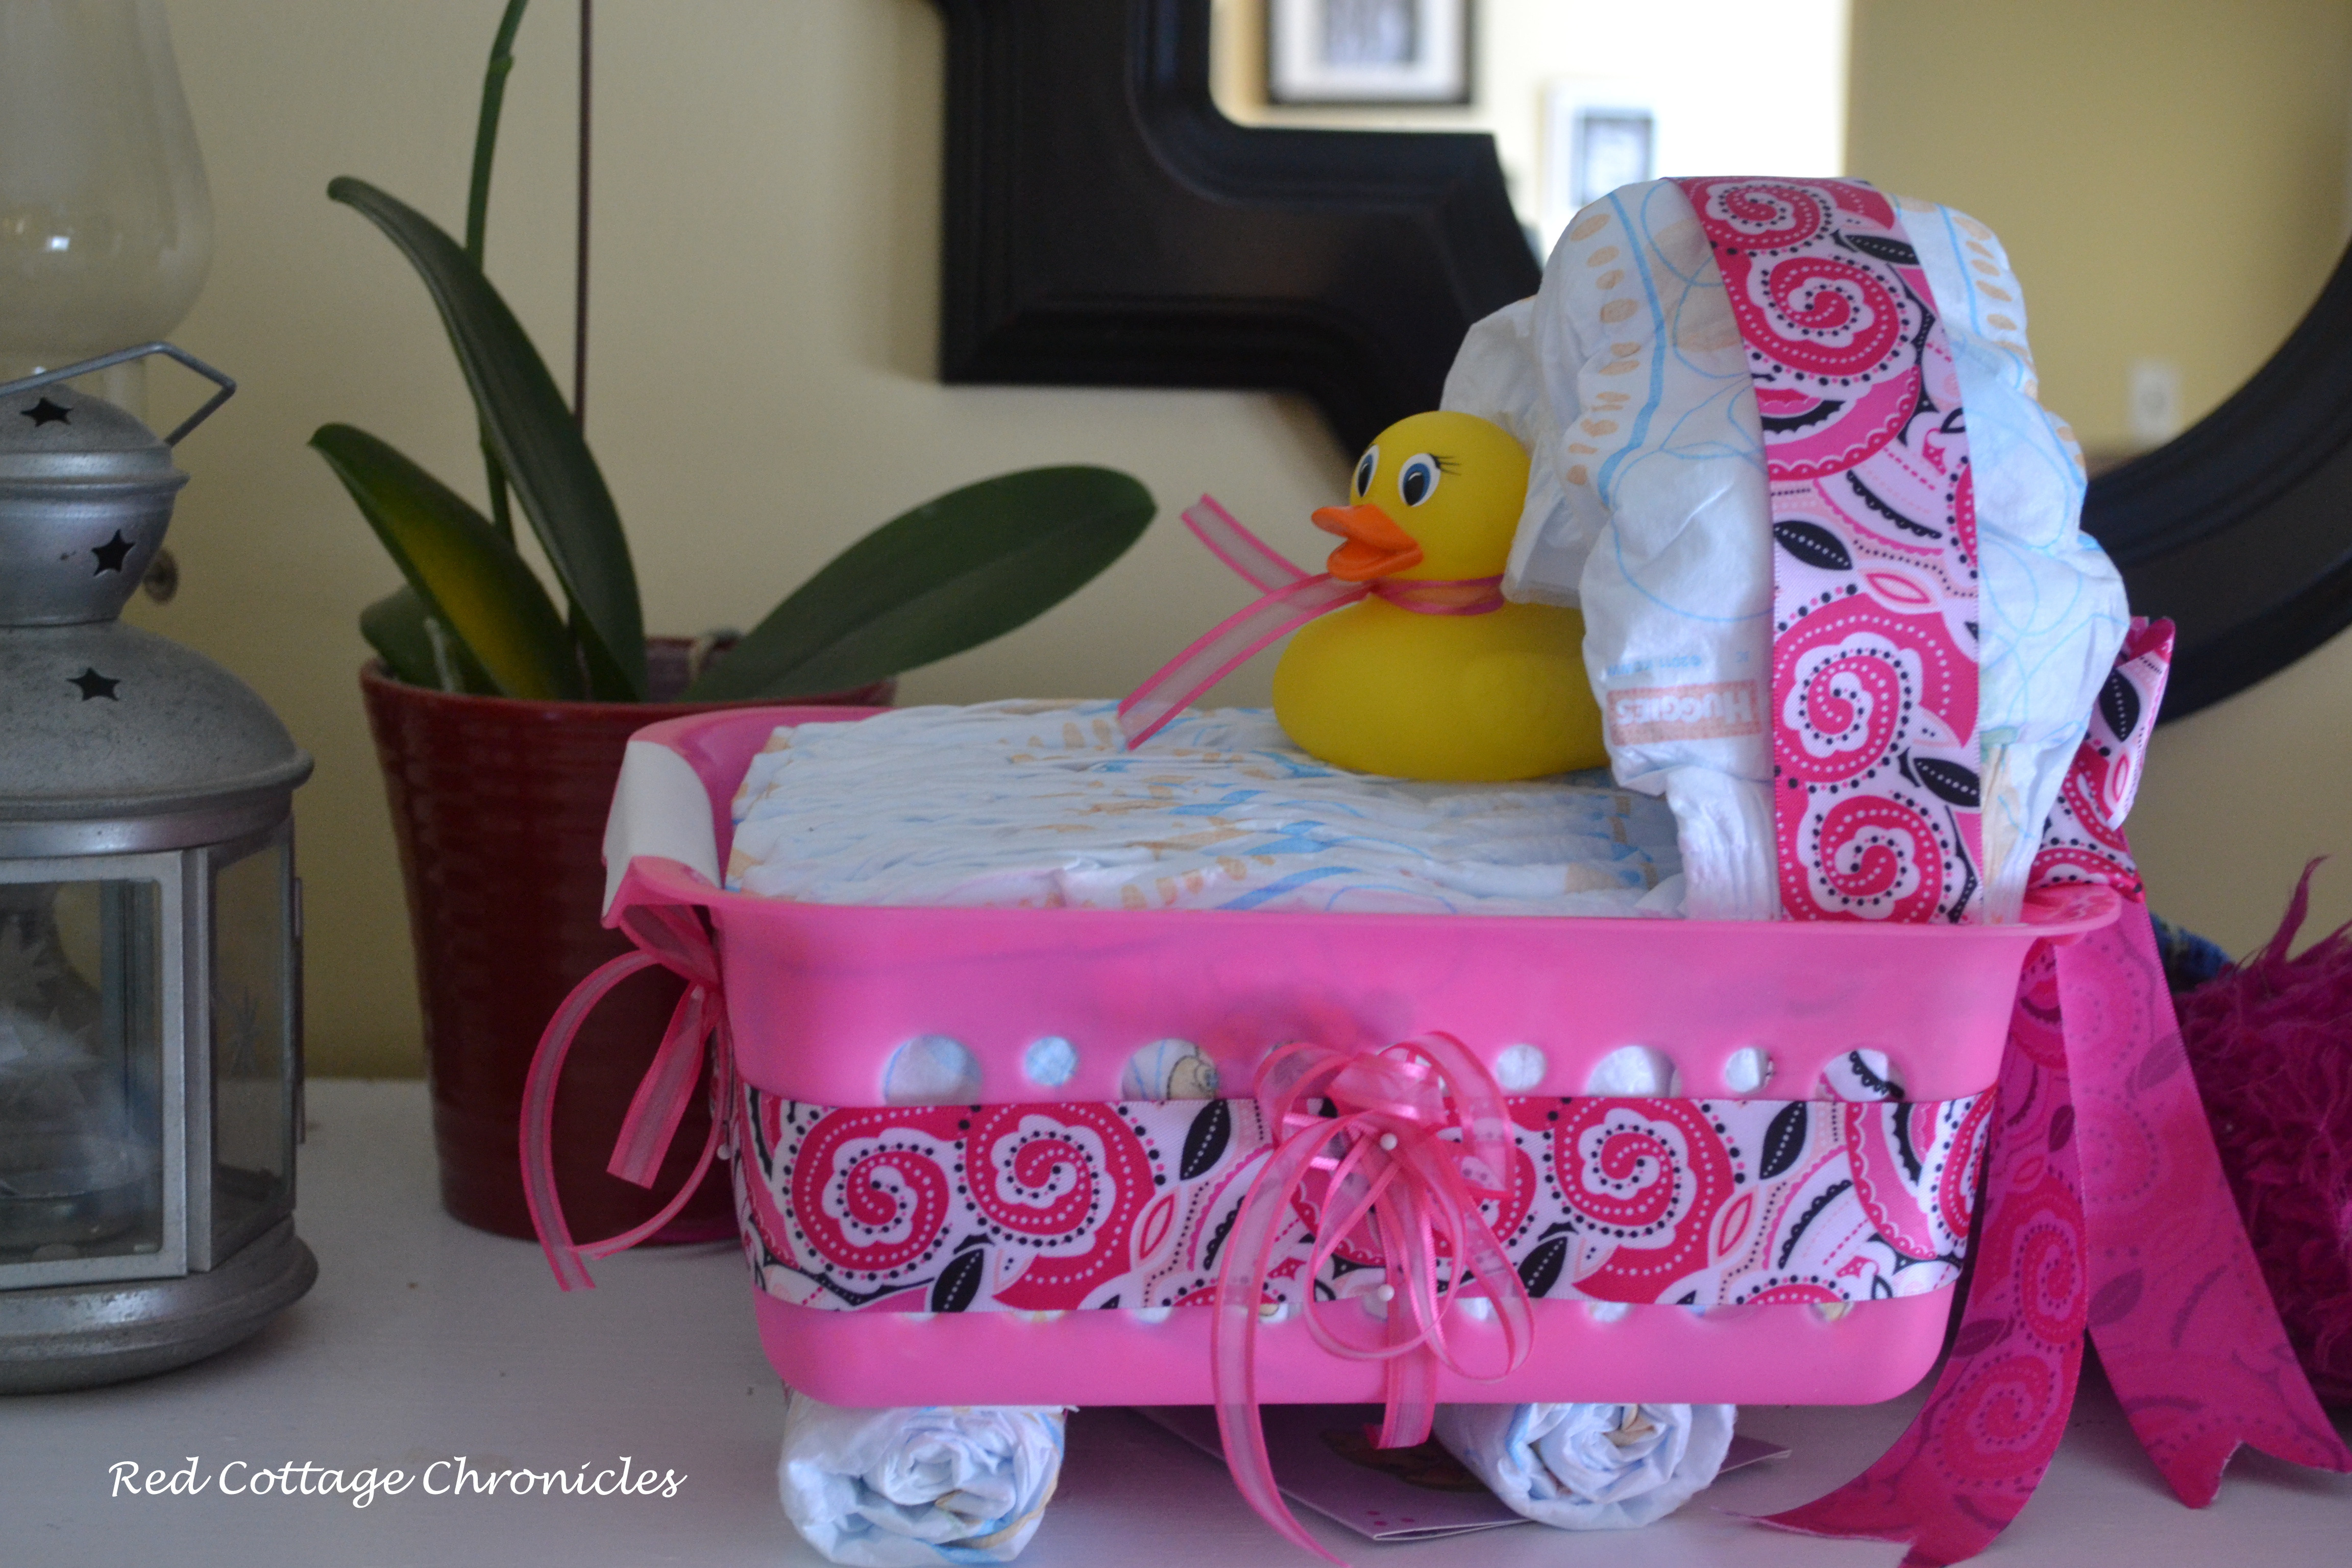 Best ideas about Gift Ideas For Baby Shower . Save or Pin This Baby Shower Gift Idea is a practical t any new mom Now.